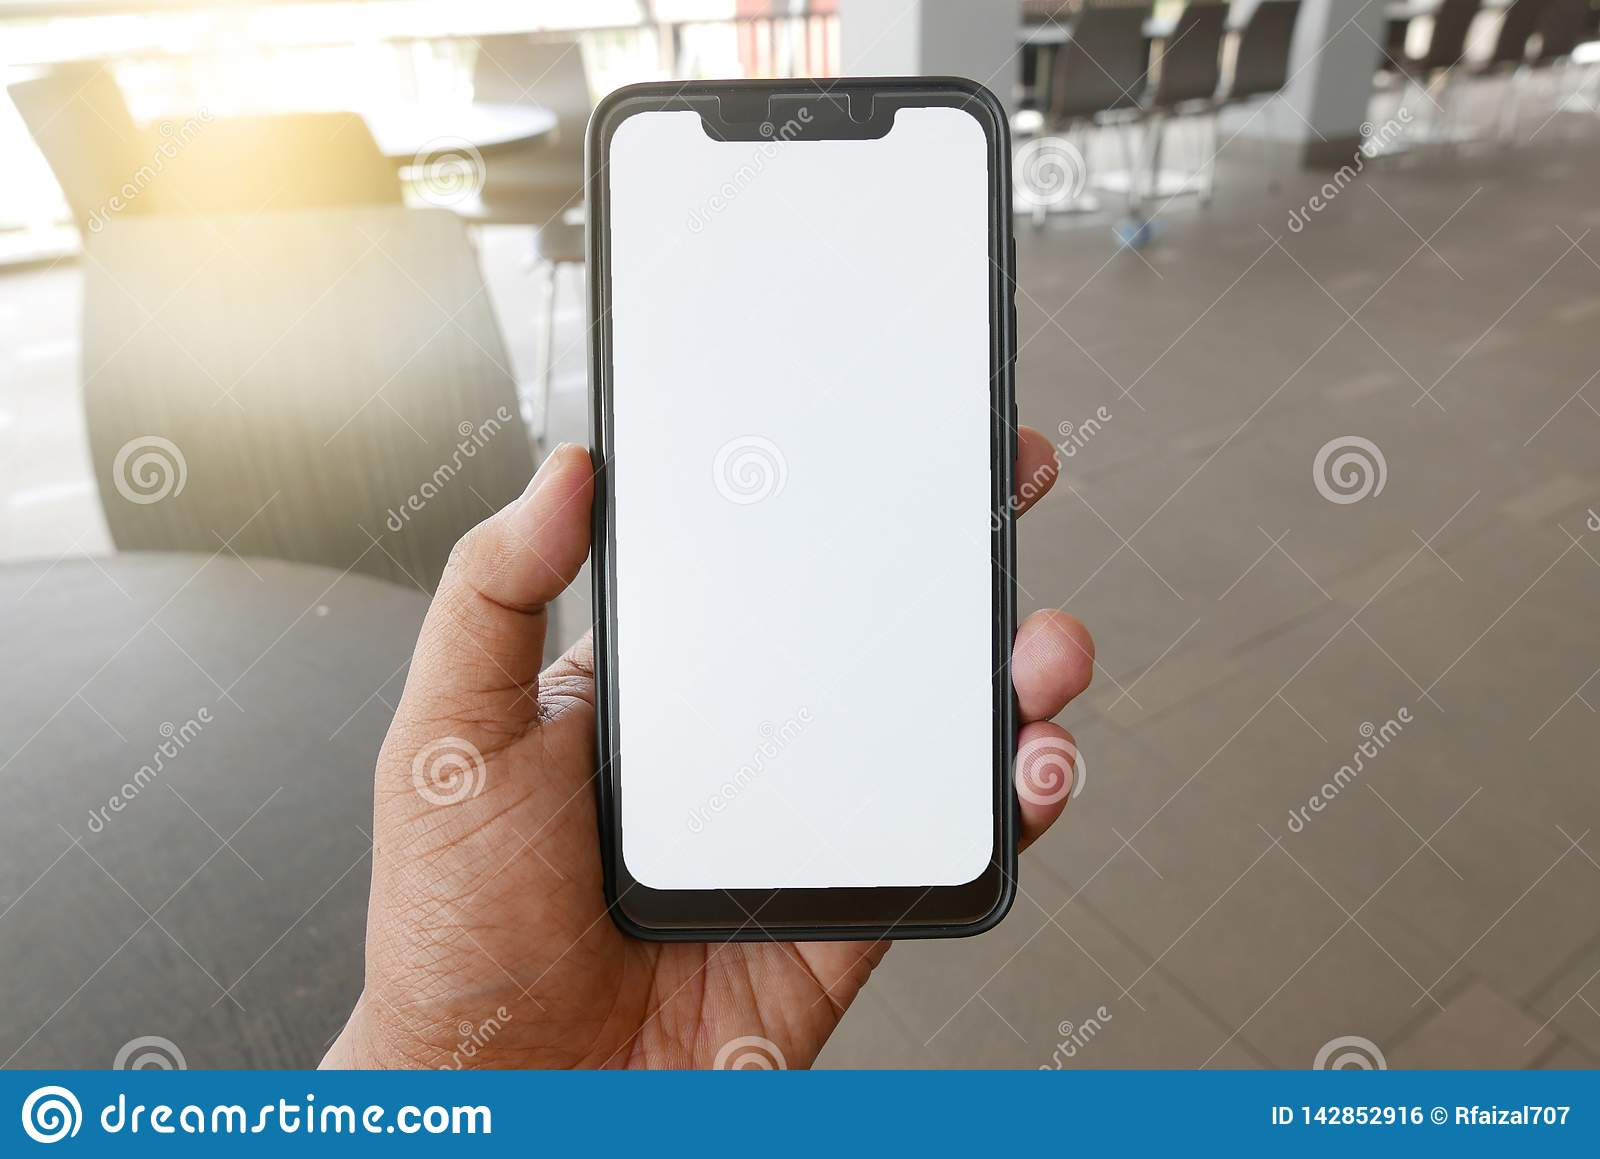 Close up of hand holding phone with white screen. Smartphone with mockup on background of cafeteria or restaurant